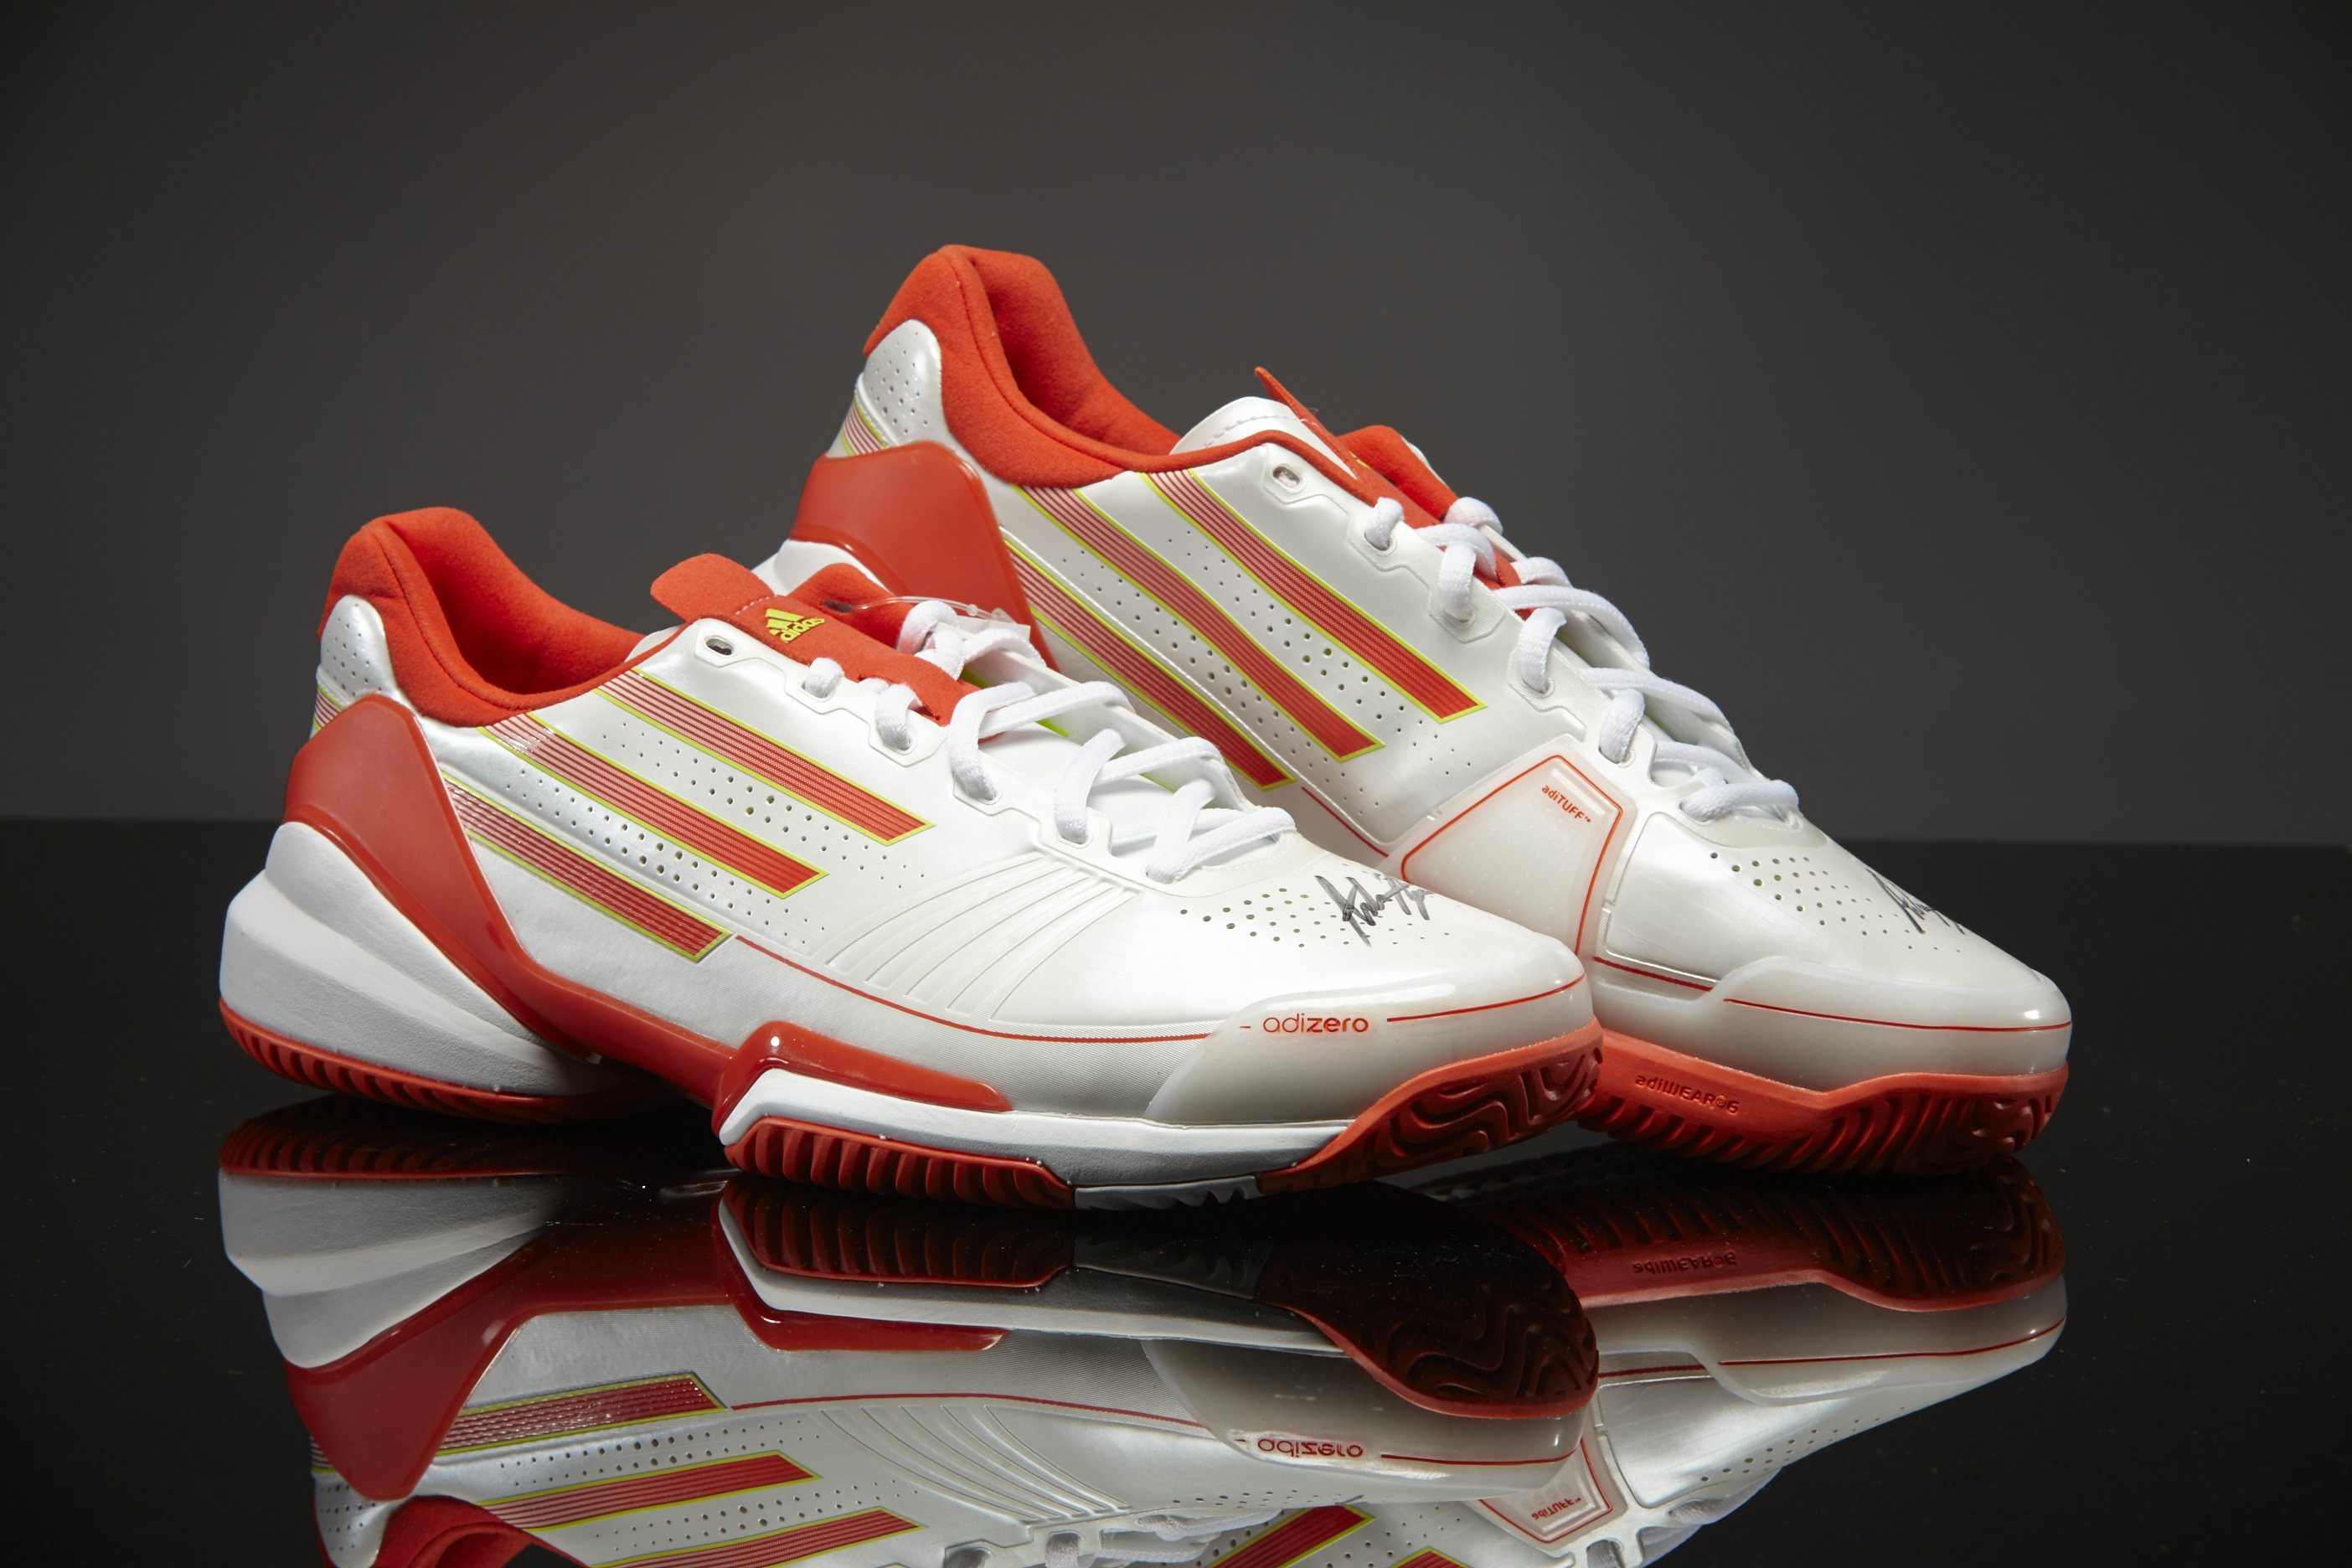 Andre Agassi 3